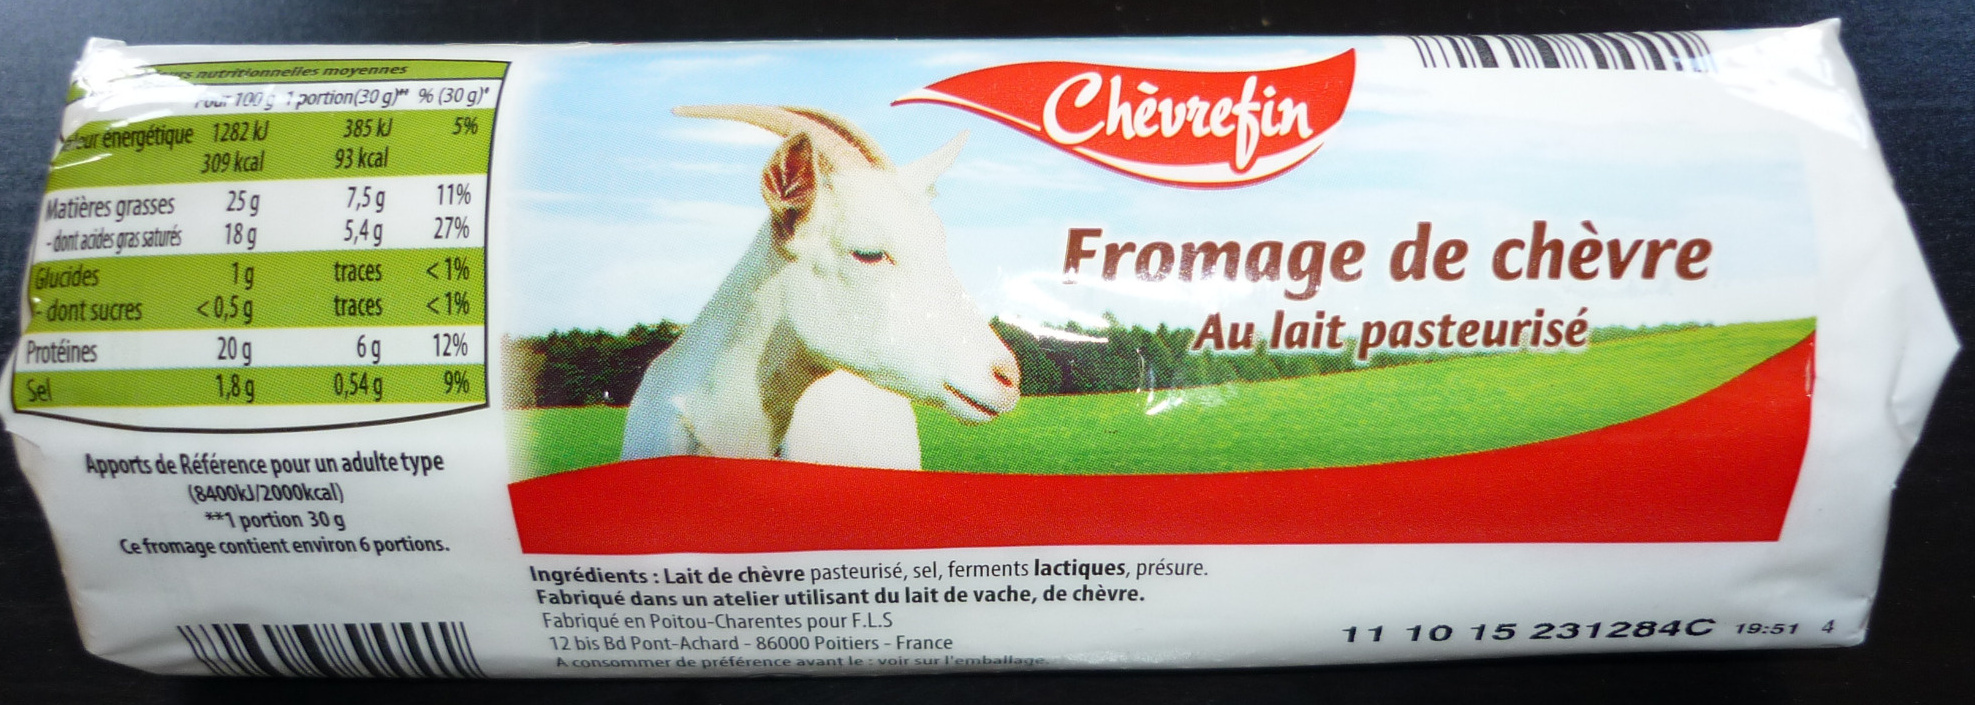 Fromage de chèvre (25% MG) - Product - fr